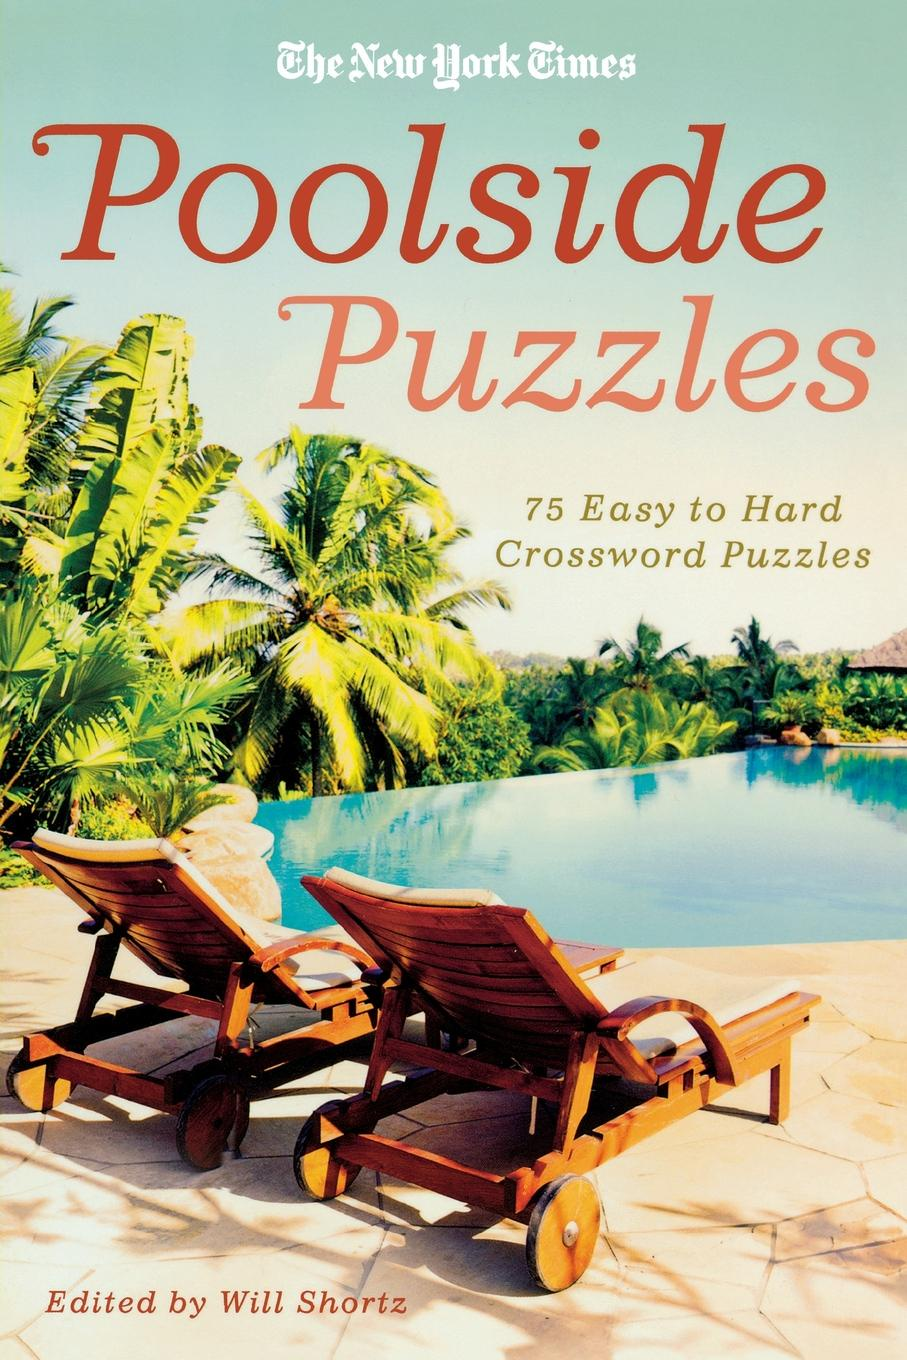 WILL SHORTZ NYT POOLSIDE PUZZLES паззл vintage puzzles